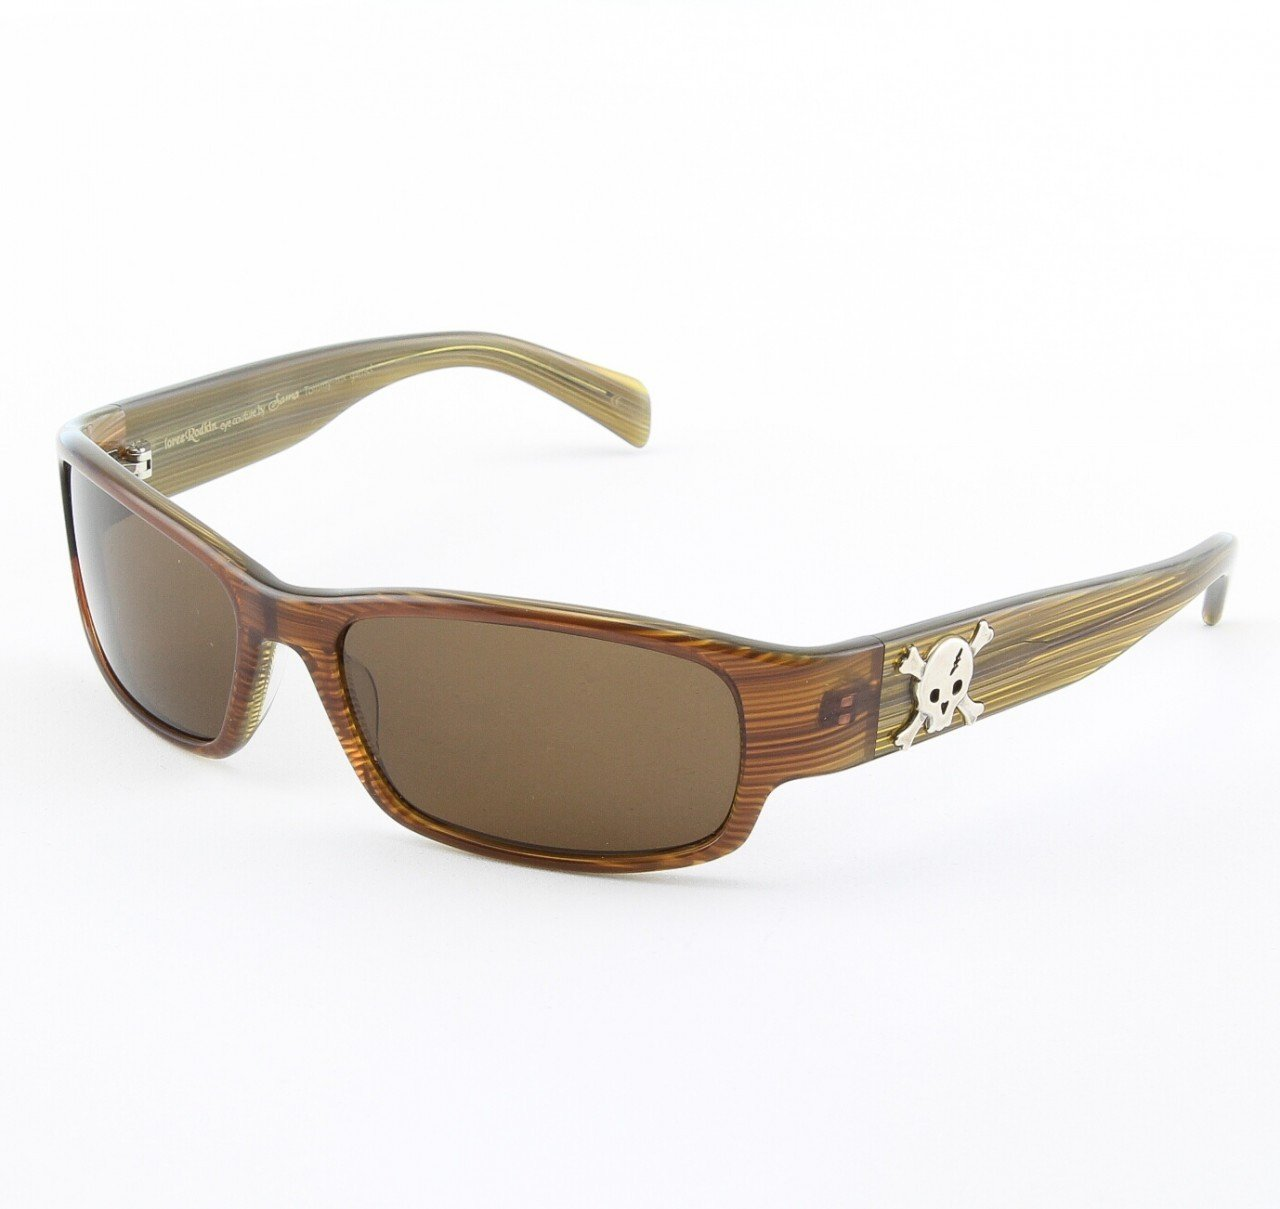 Loree Rodkin Tommy-MX Sunglasses by Sama Col. Garnet with Brown Lenses and Sterling Silver